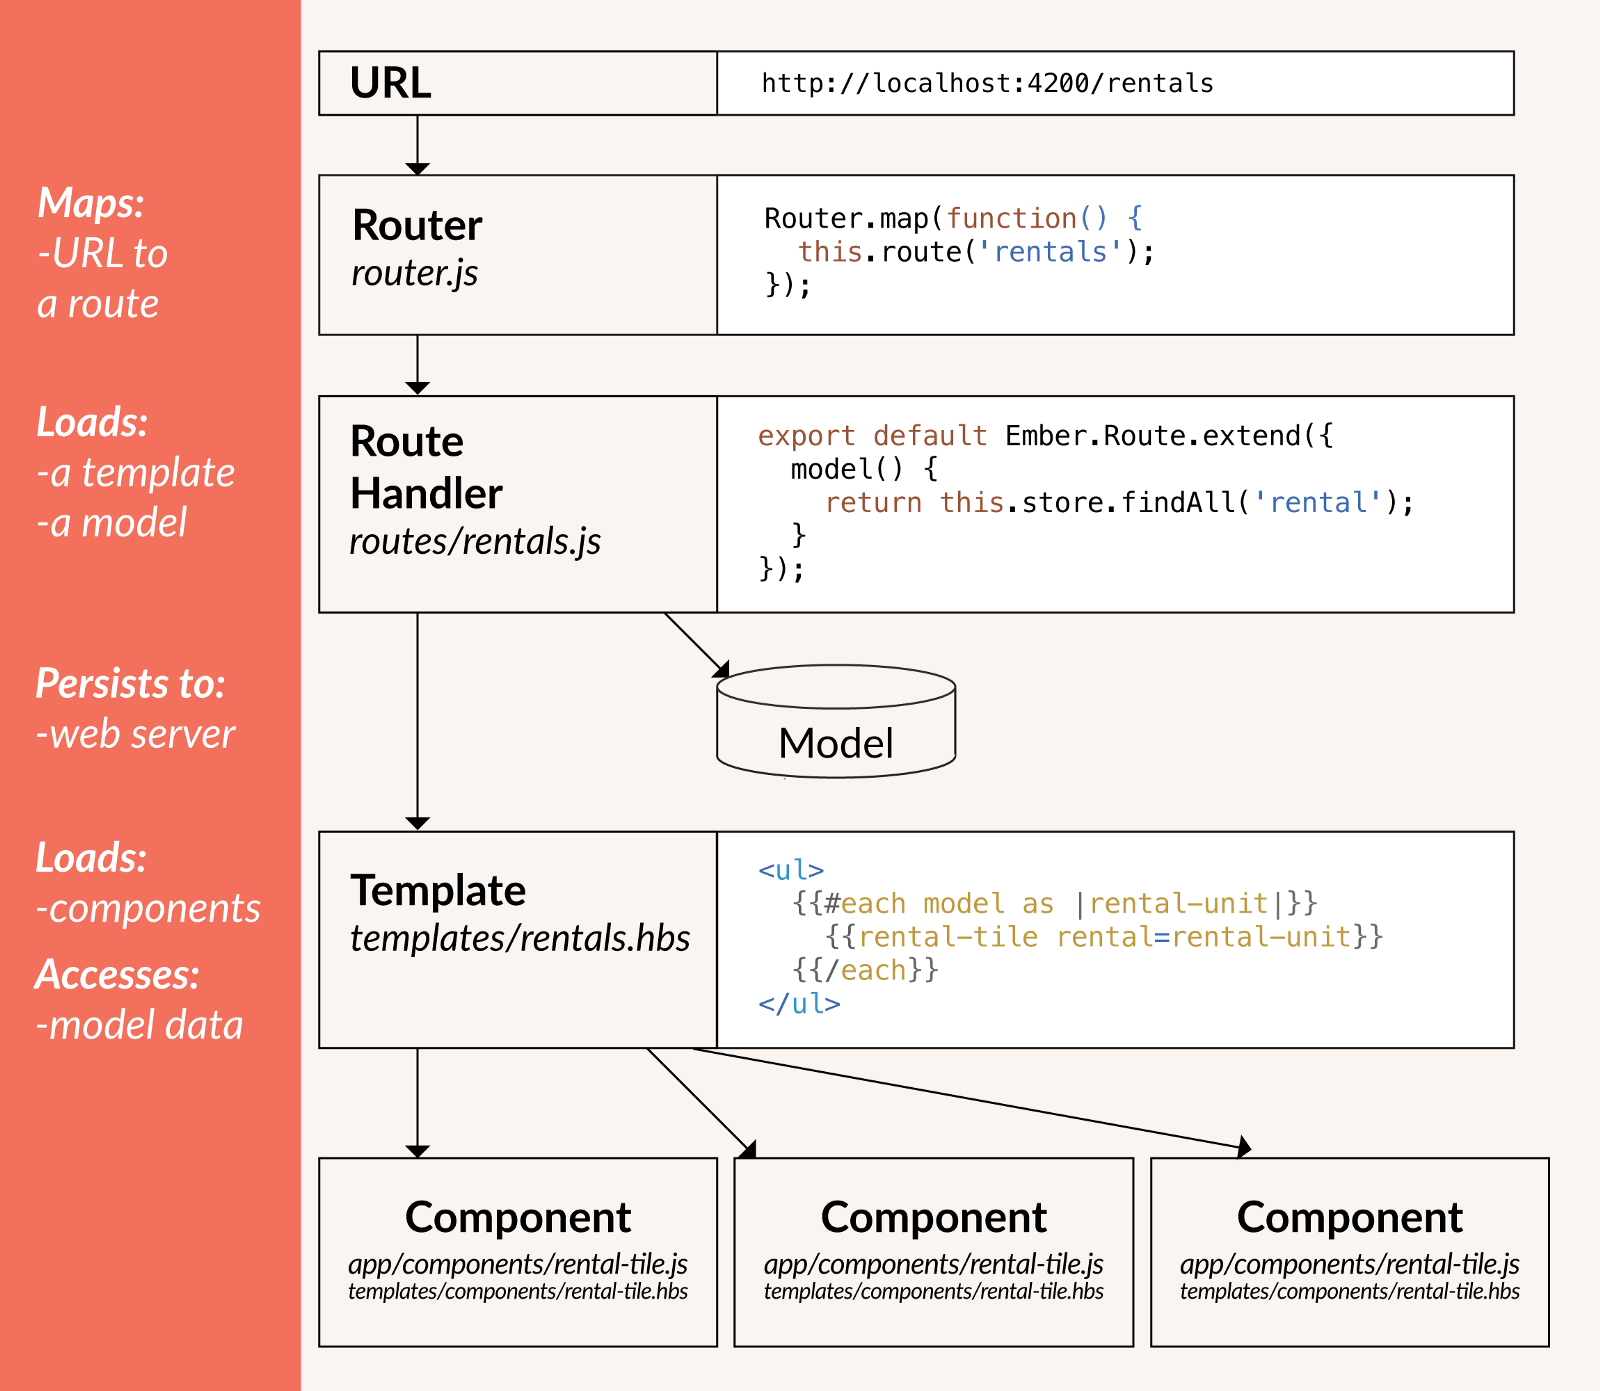 javascript - REST API call with Ember js - Stack Overflow